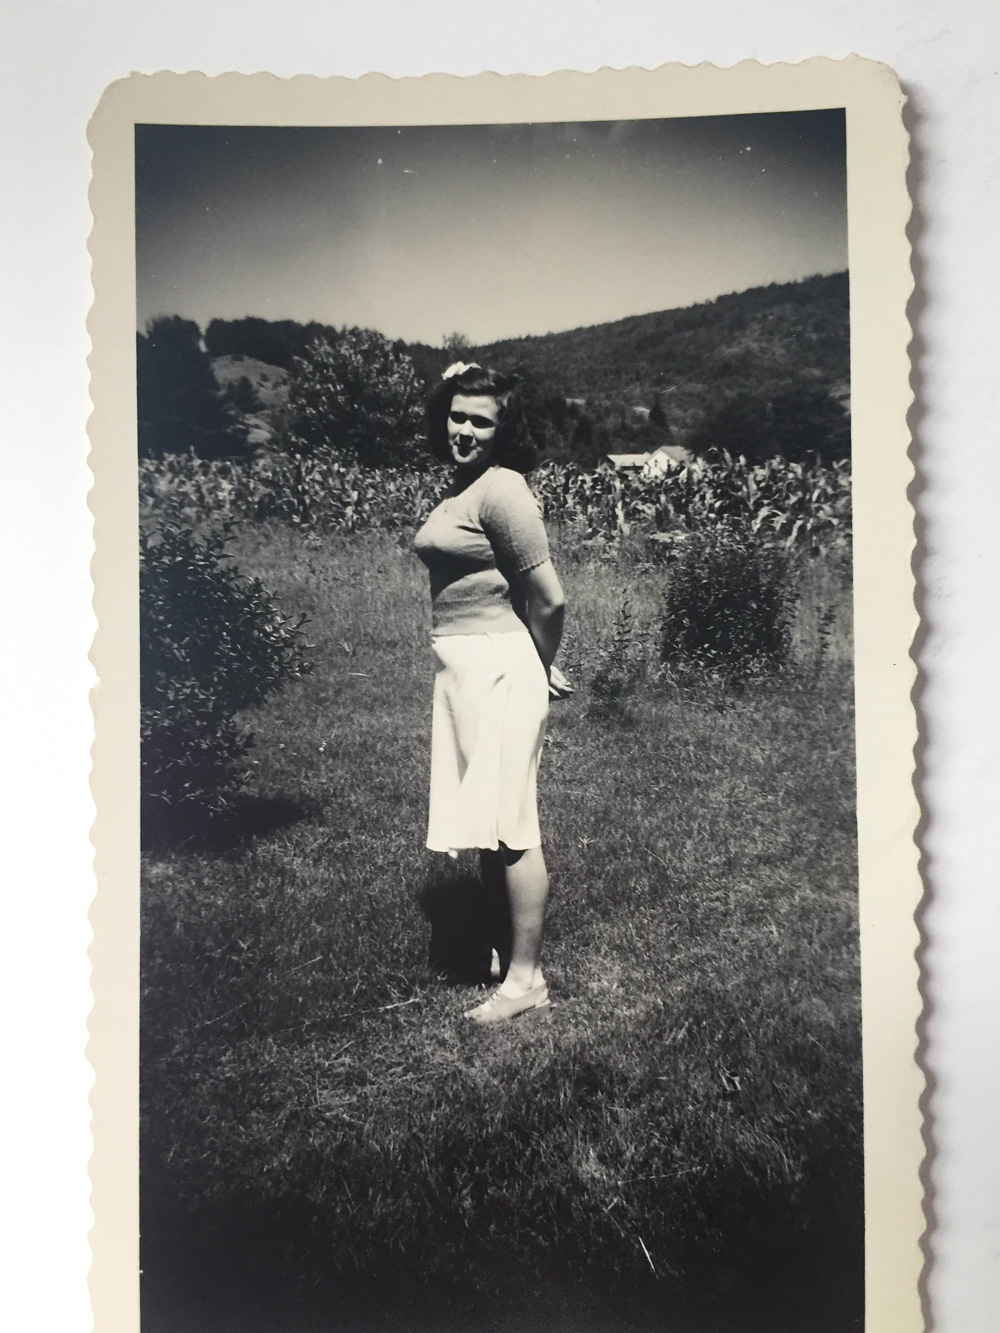 Grandma in the mid-'40s